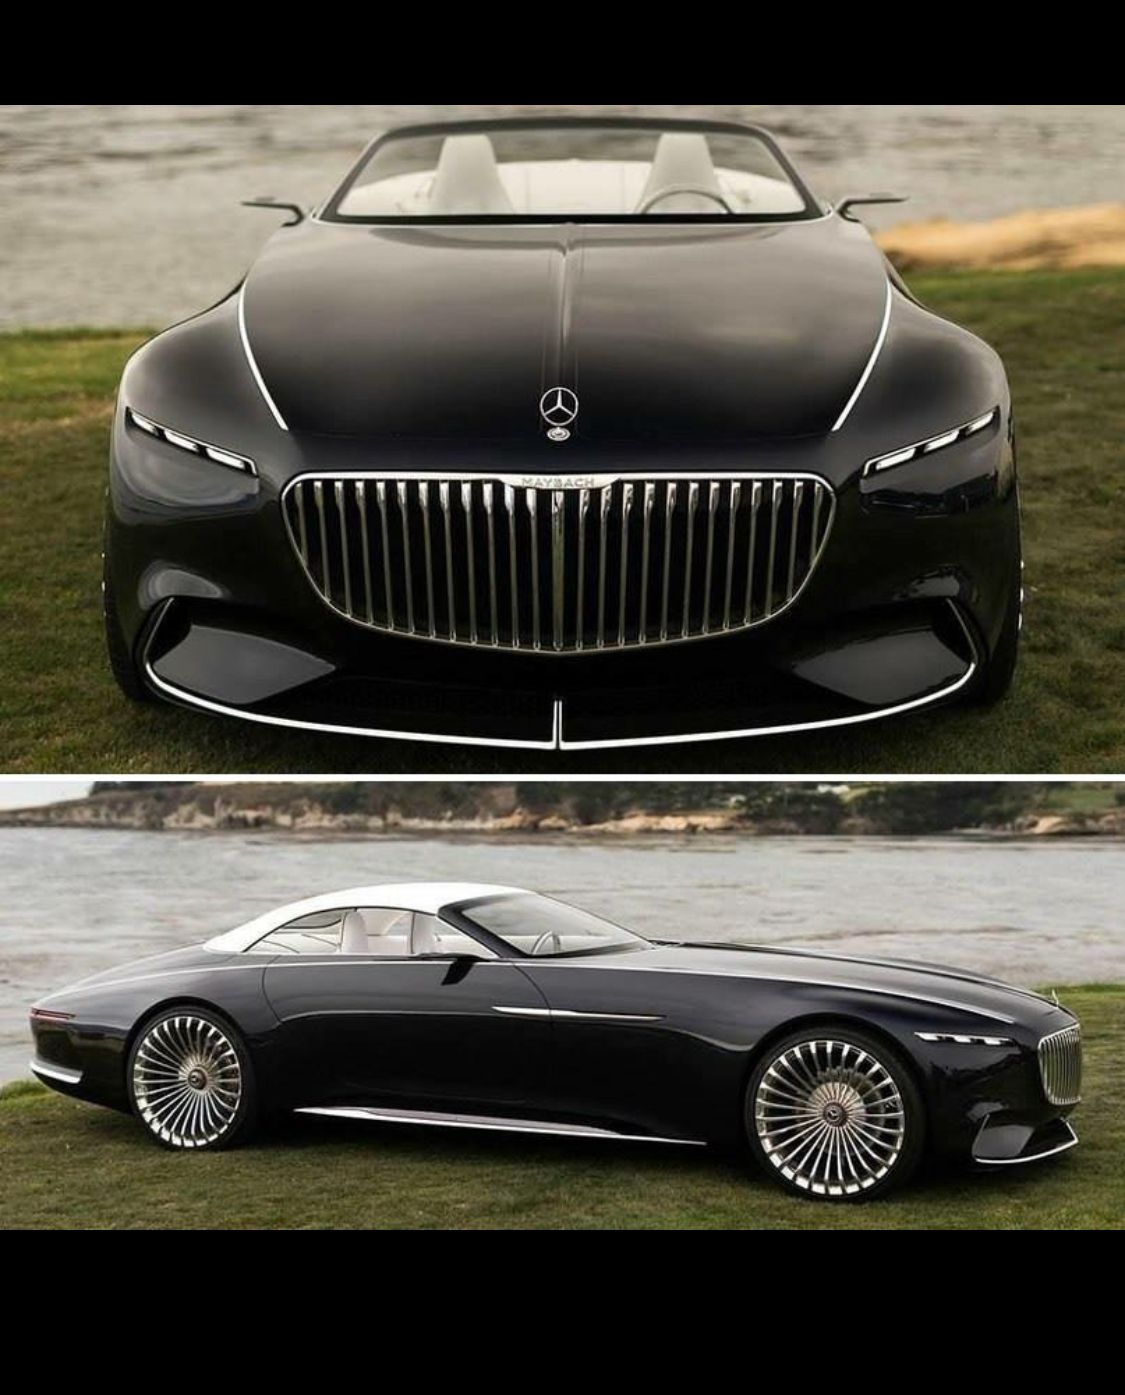 Luxury Cars: Pin By Jamesmichaels On Luxury Cars